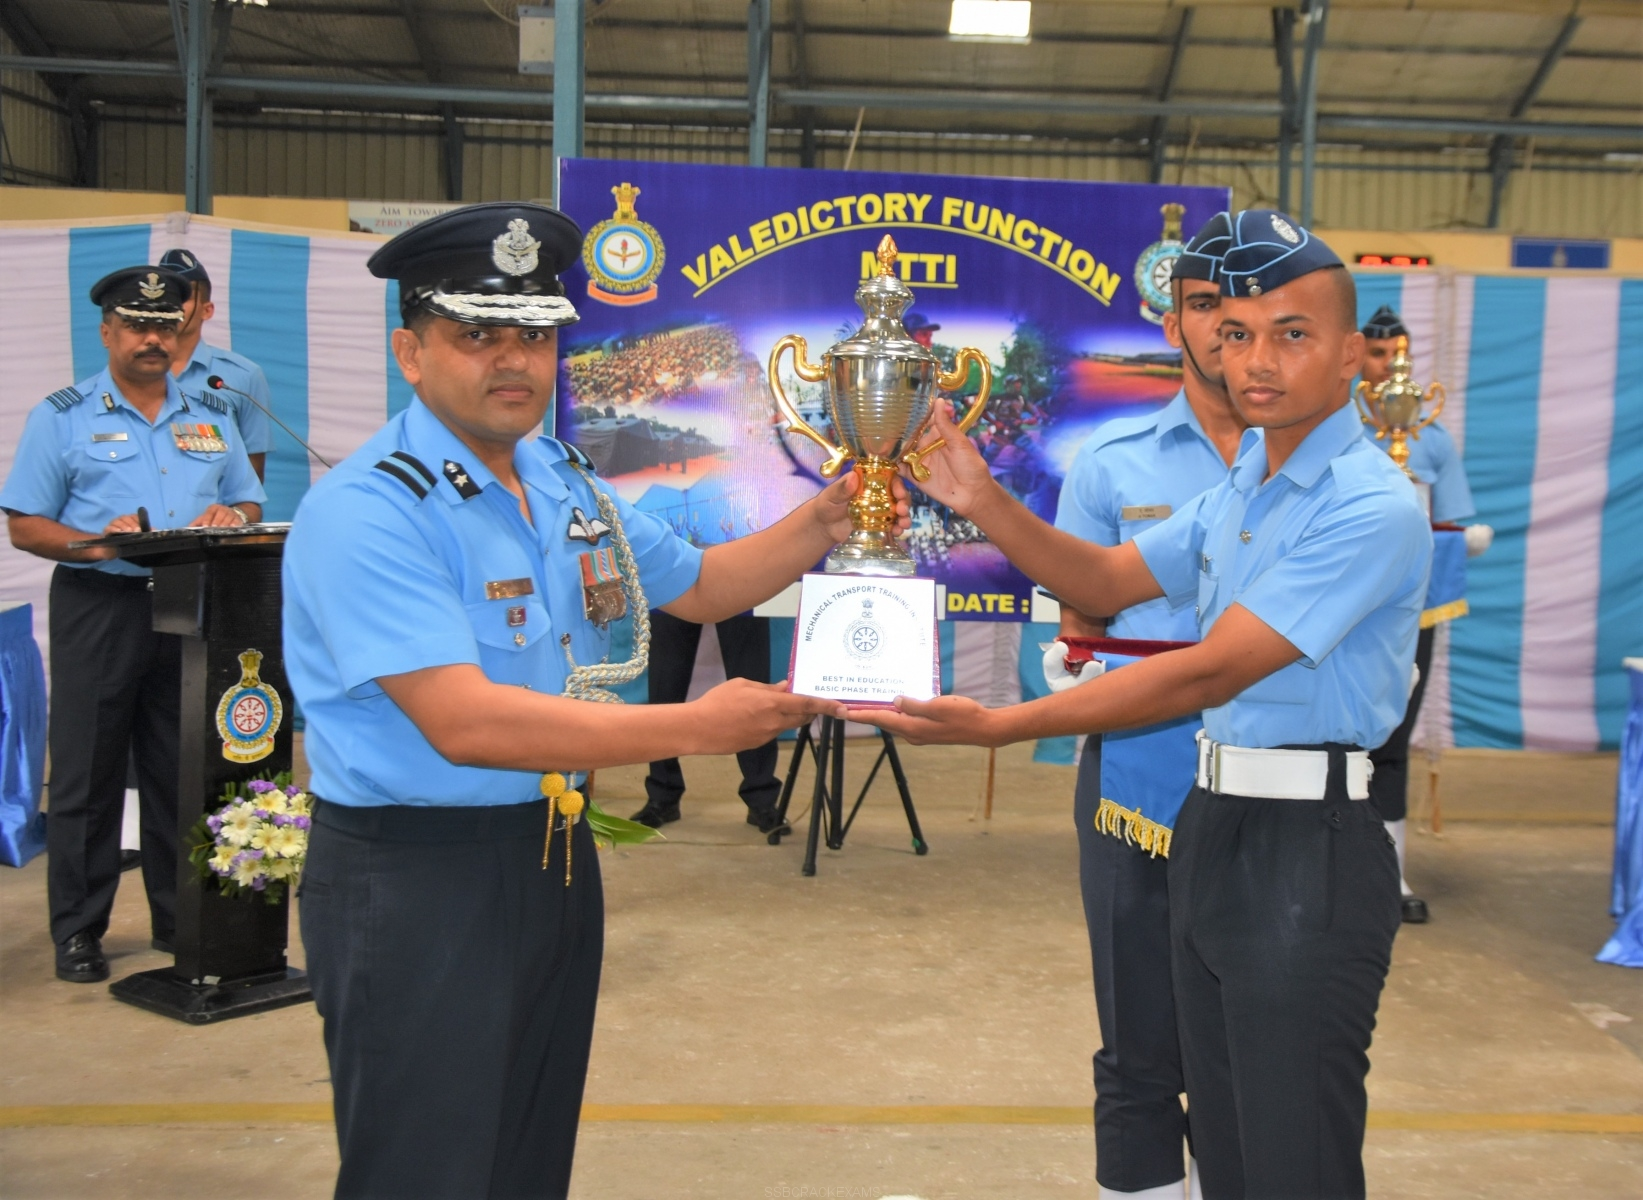 396 Trainees Pass Out From MTTI Air Force Station - 1